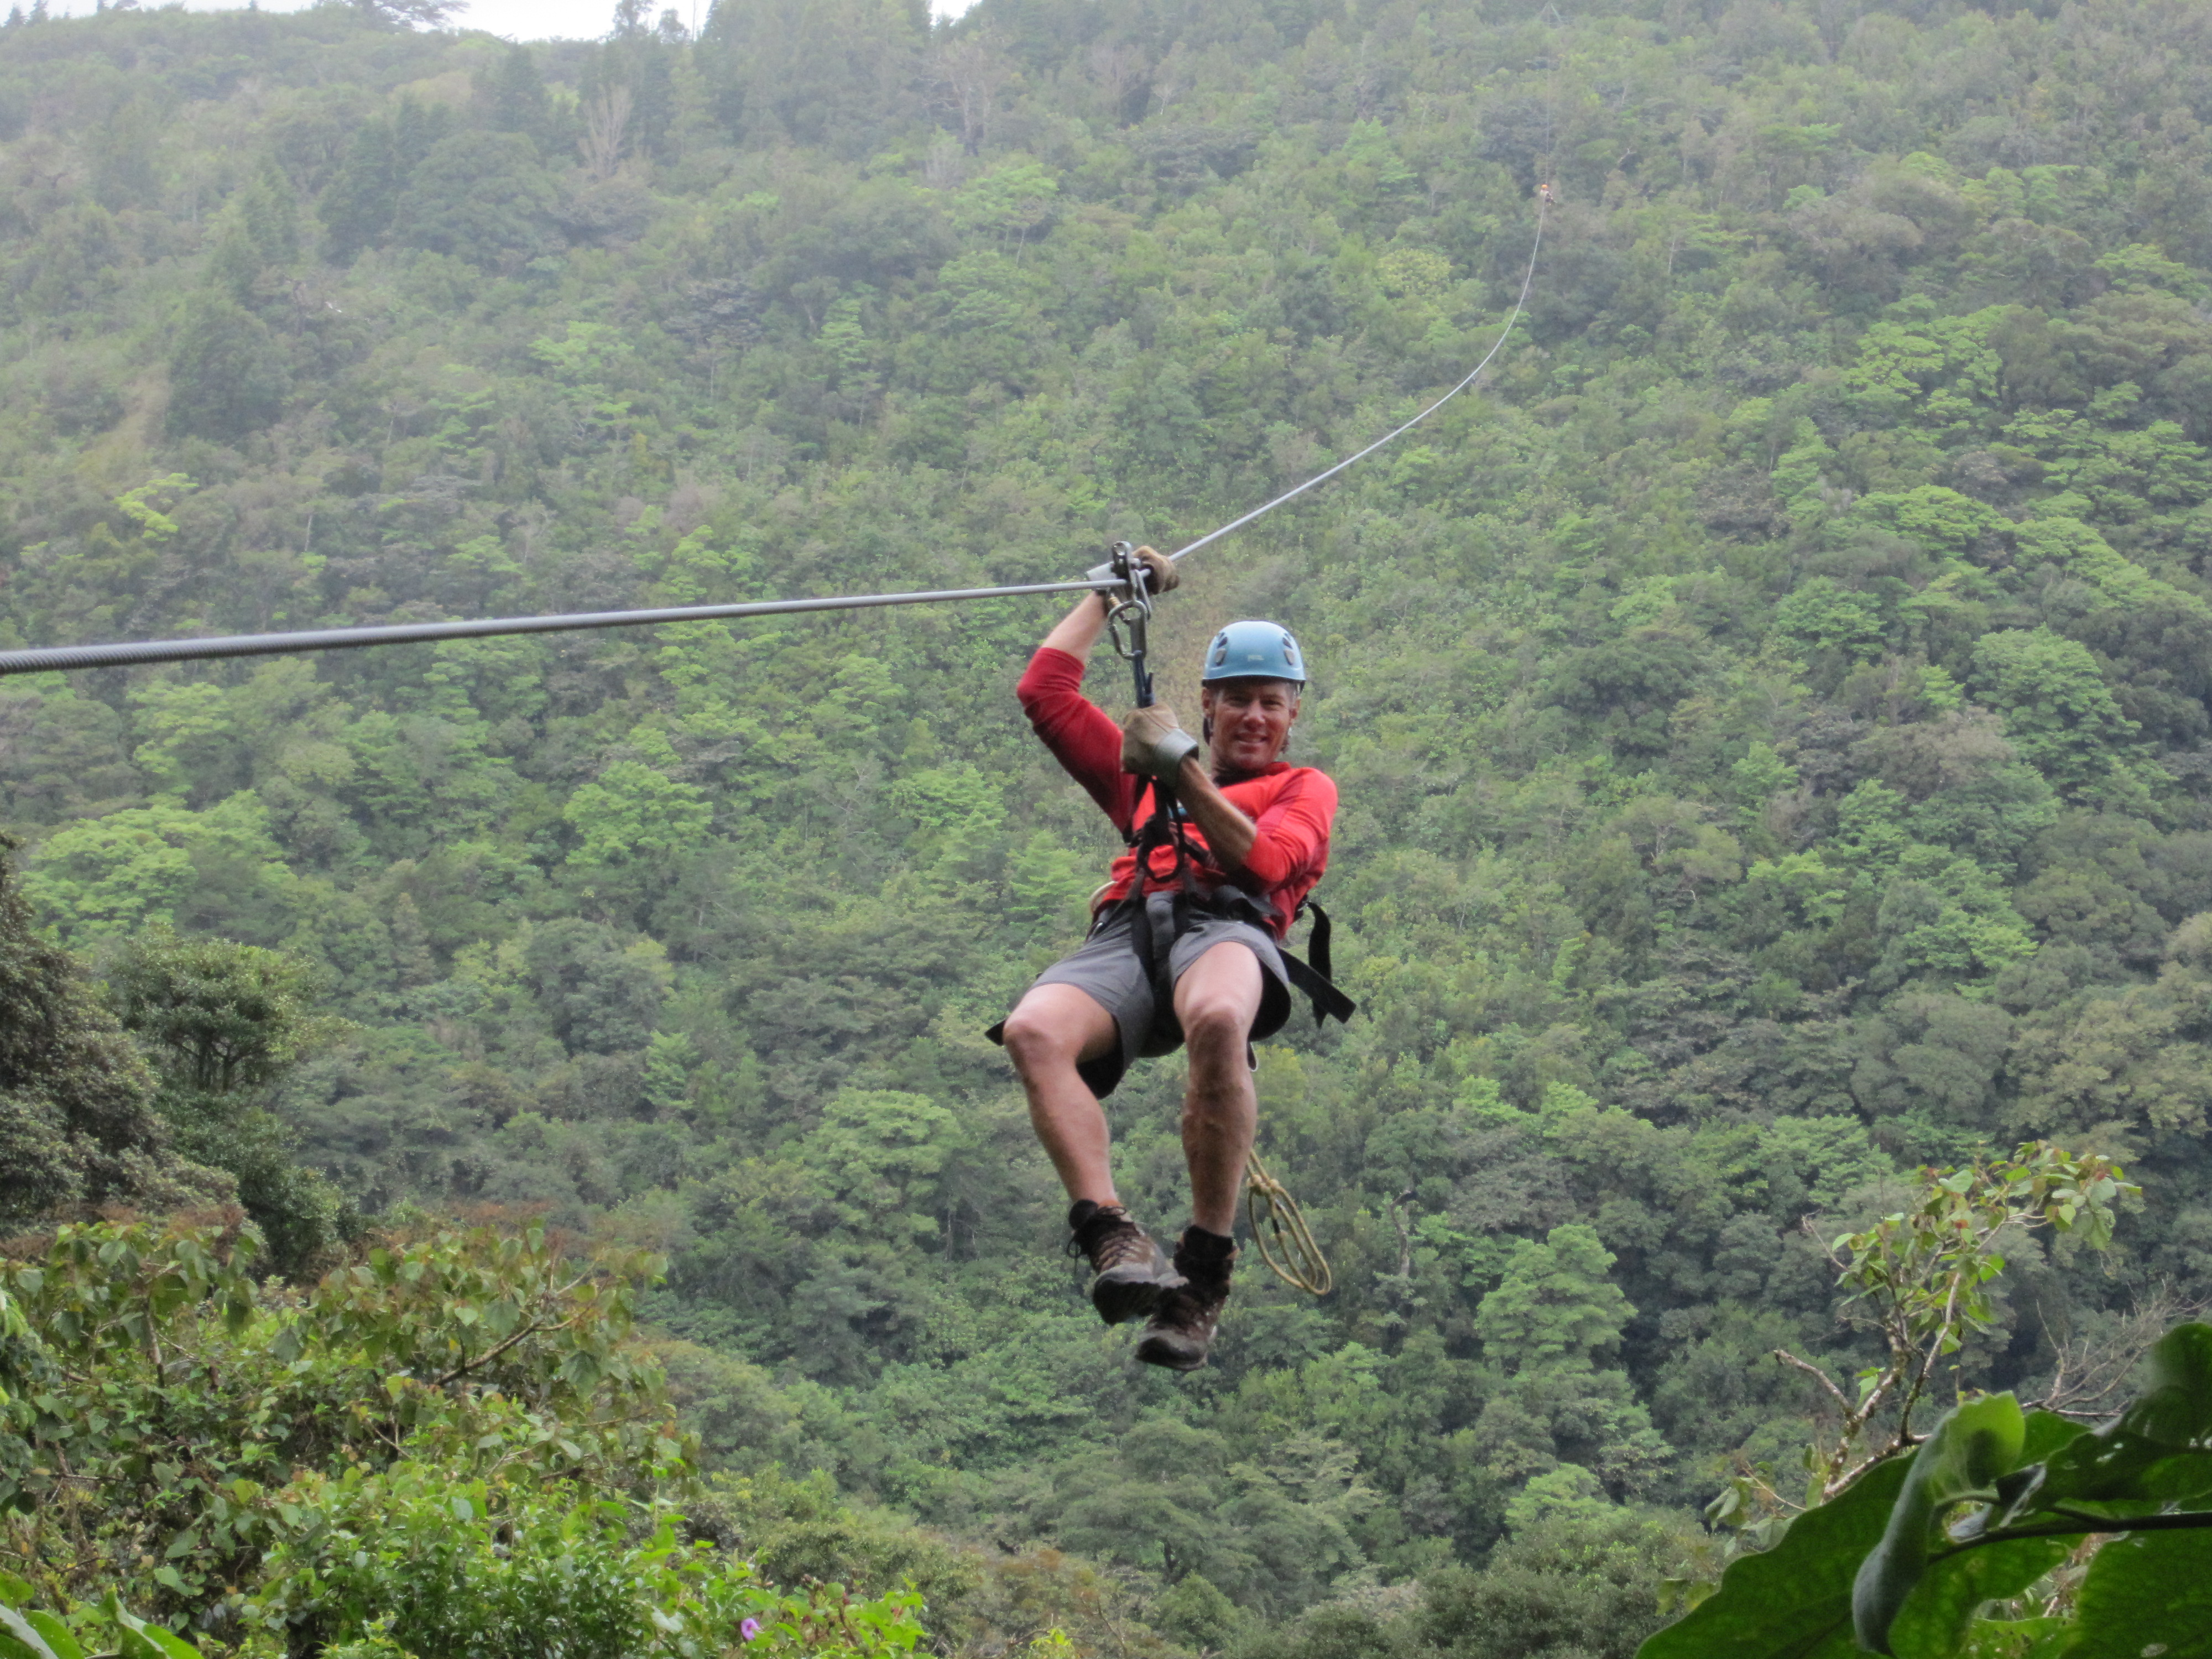 costa rican zipline Arenal zip lines - more than 500 acres of forest with an amazing view 10 cables, 10 platforms, 3 trails, 2 hanging bridges, 1 tarzan swing total of 1045m.